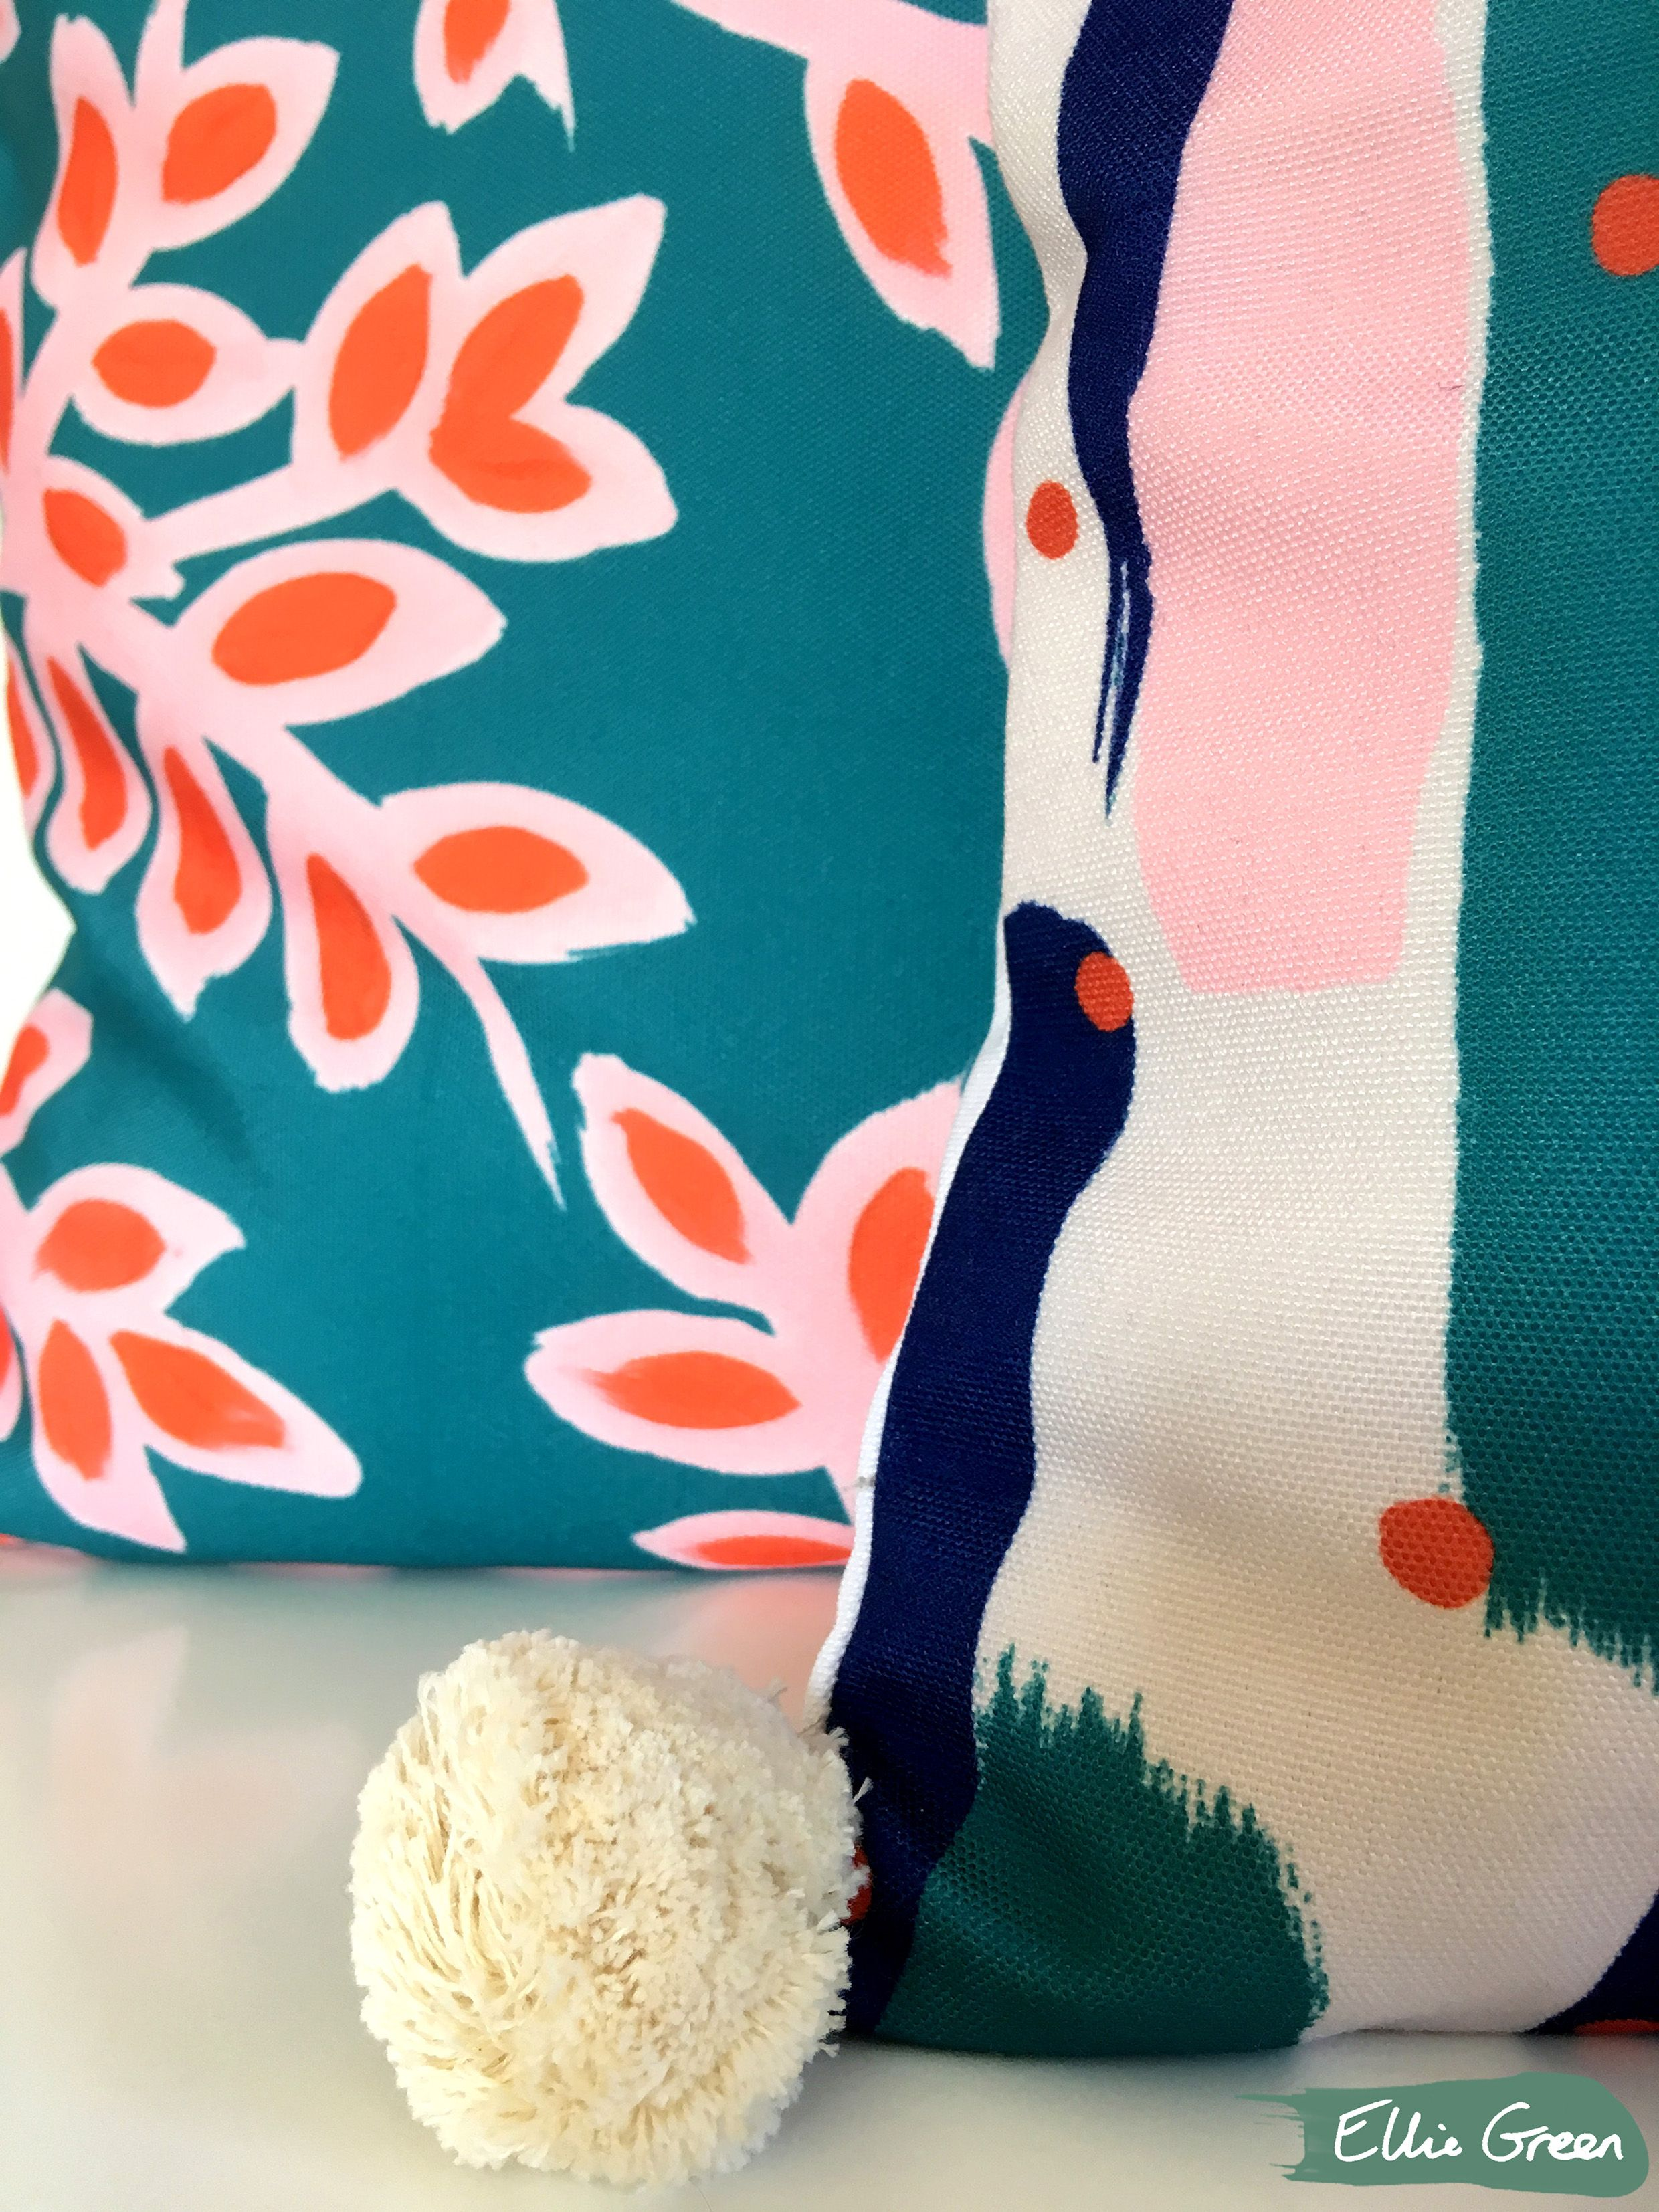 Cushions available to purchase from elliegreendesign